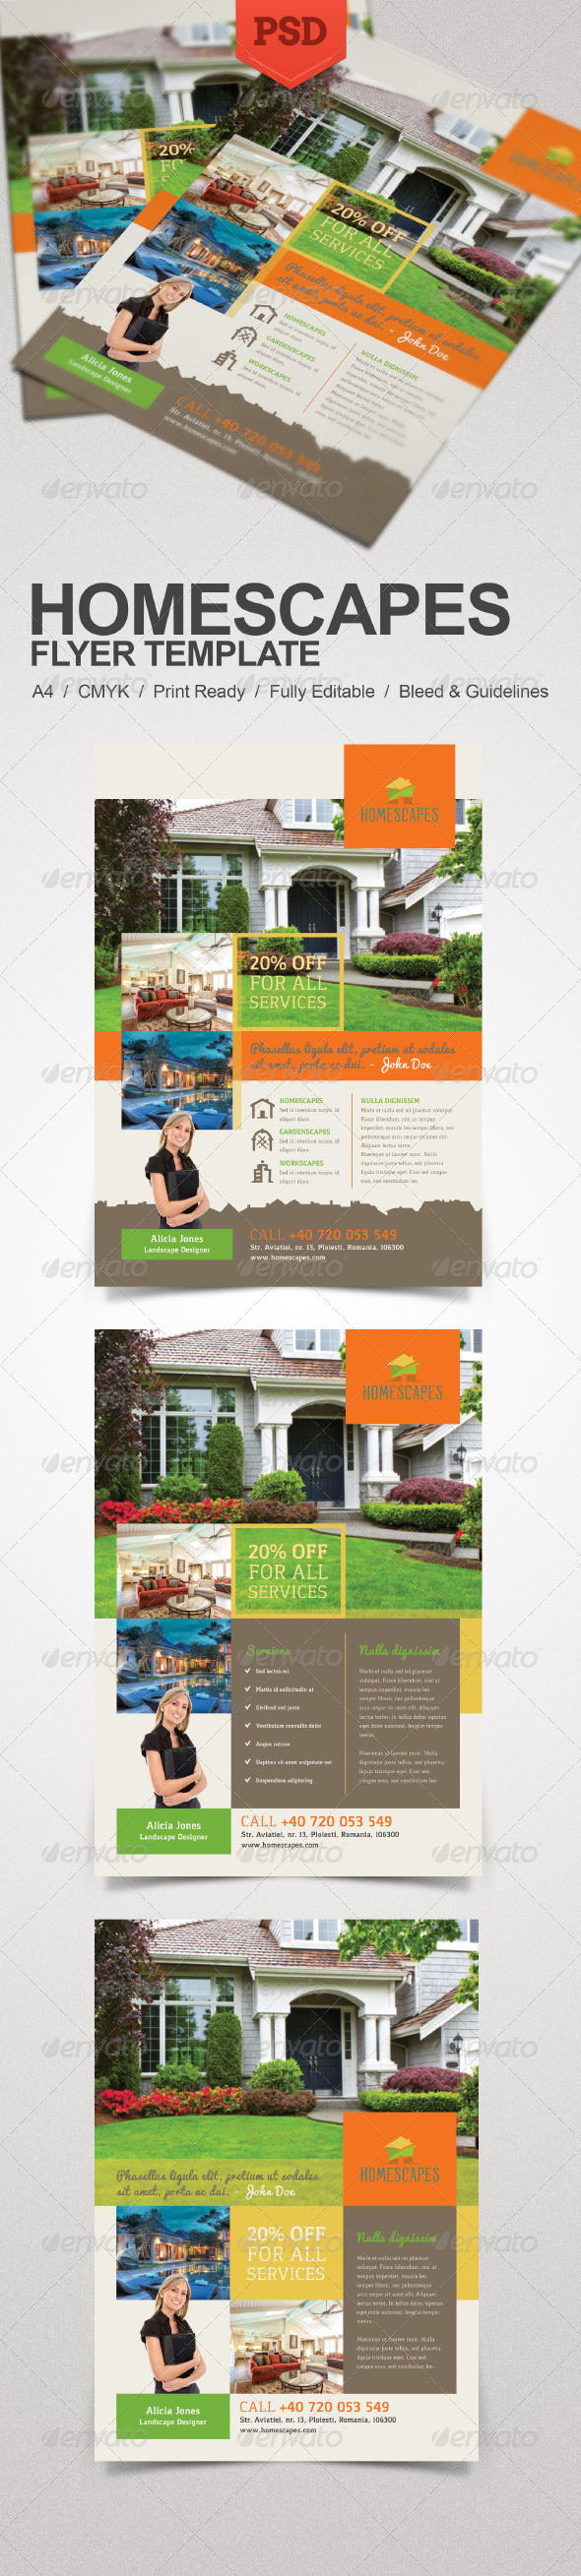 Real Estate and Homescapes Flyer